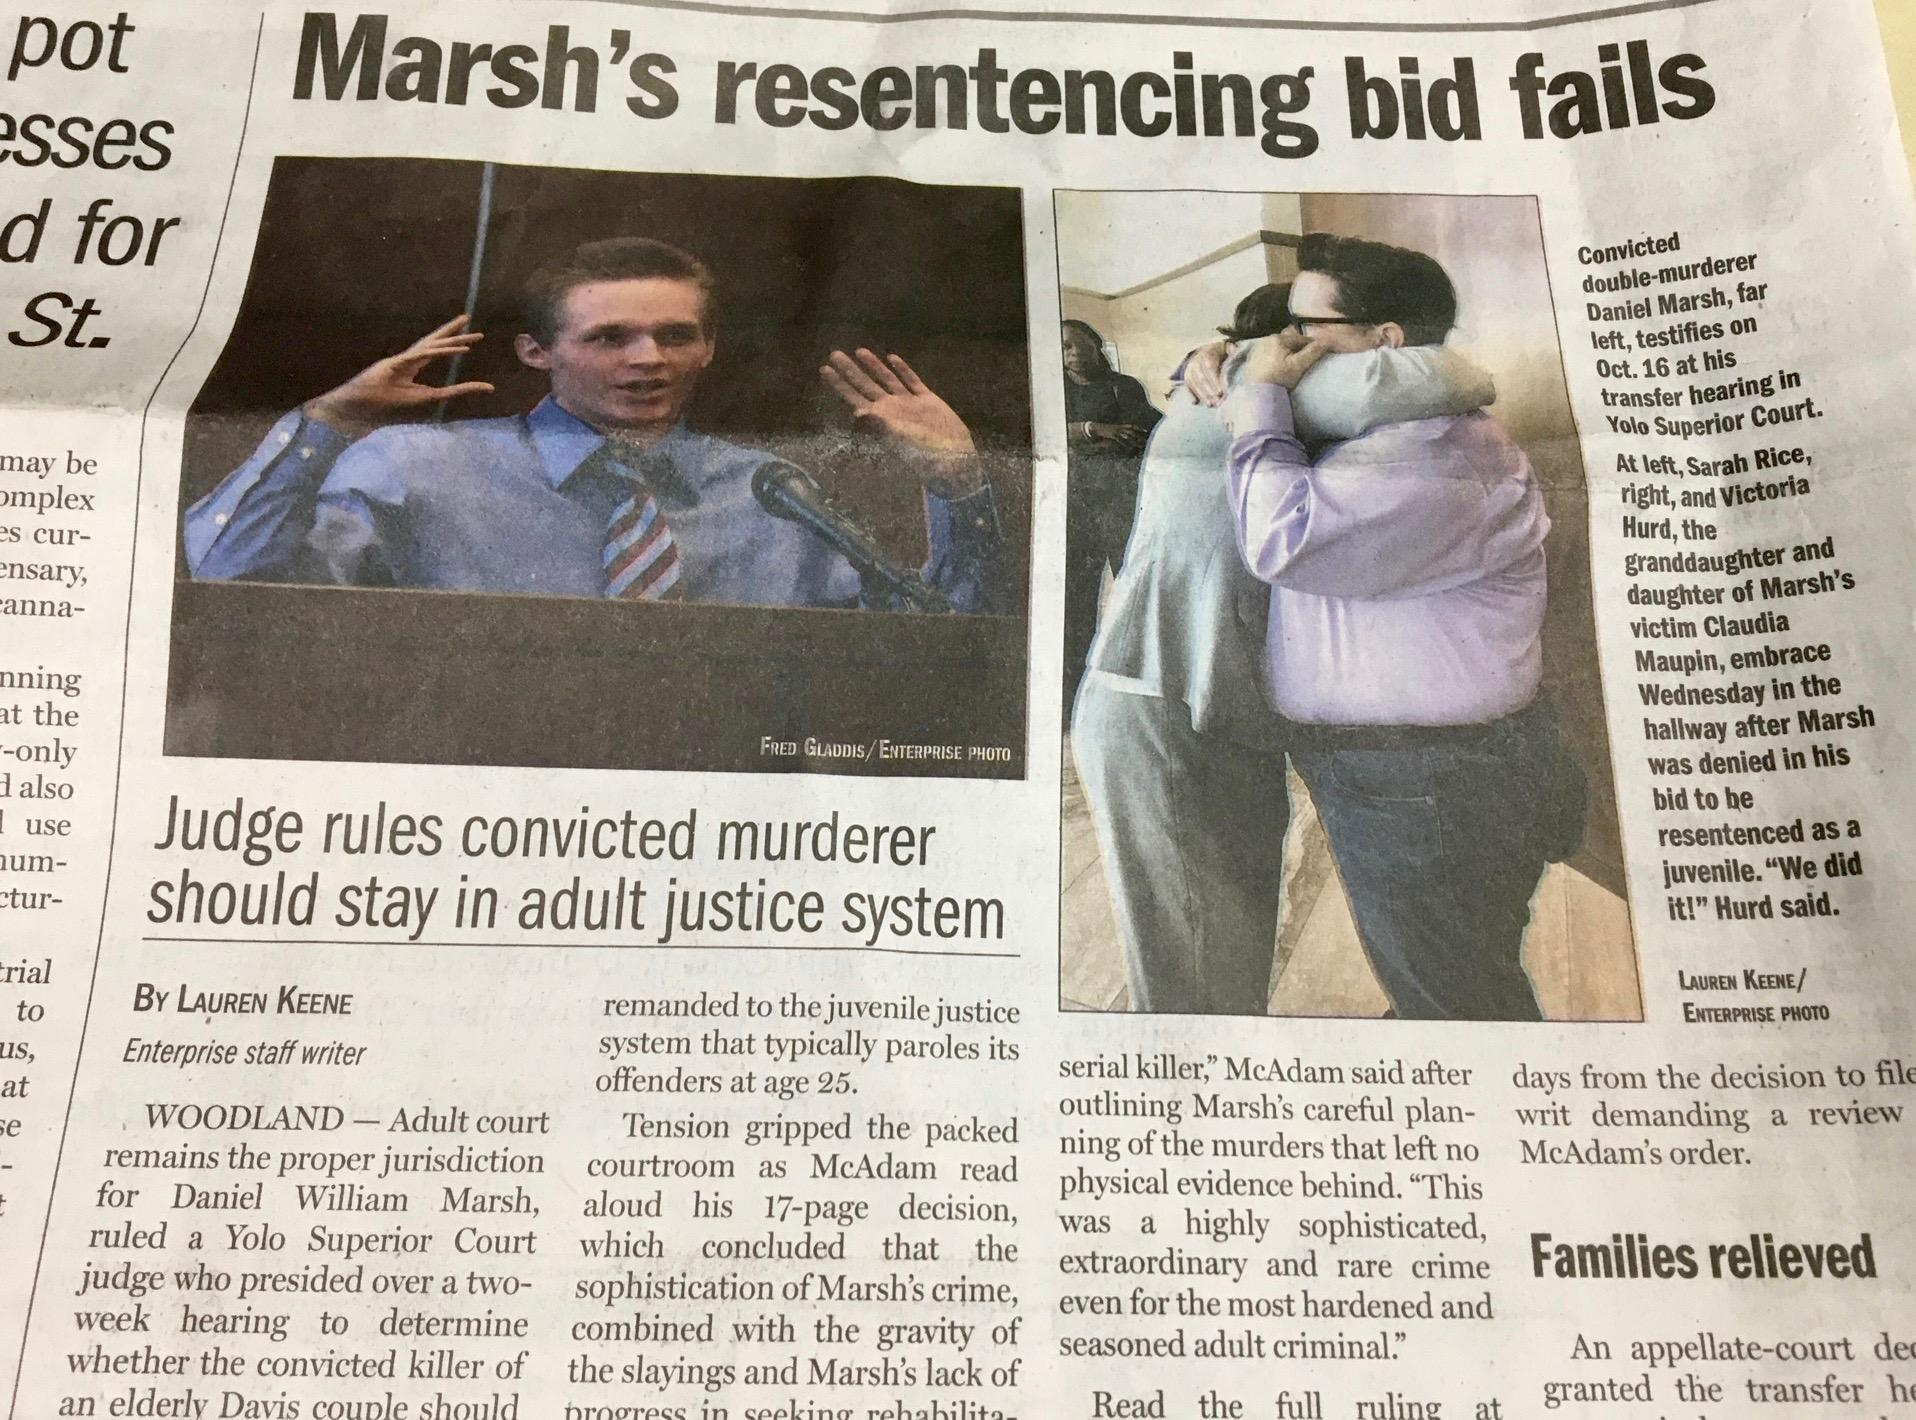 Newspaper front page, about Daniel Marsh